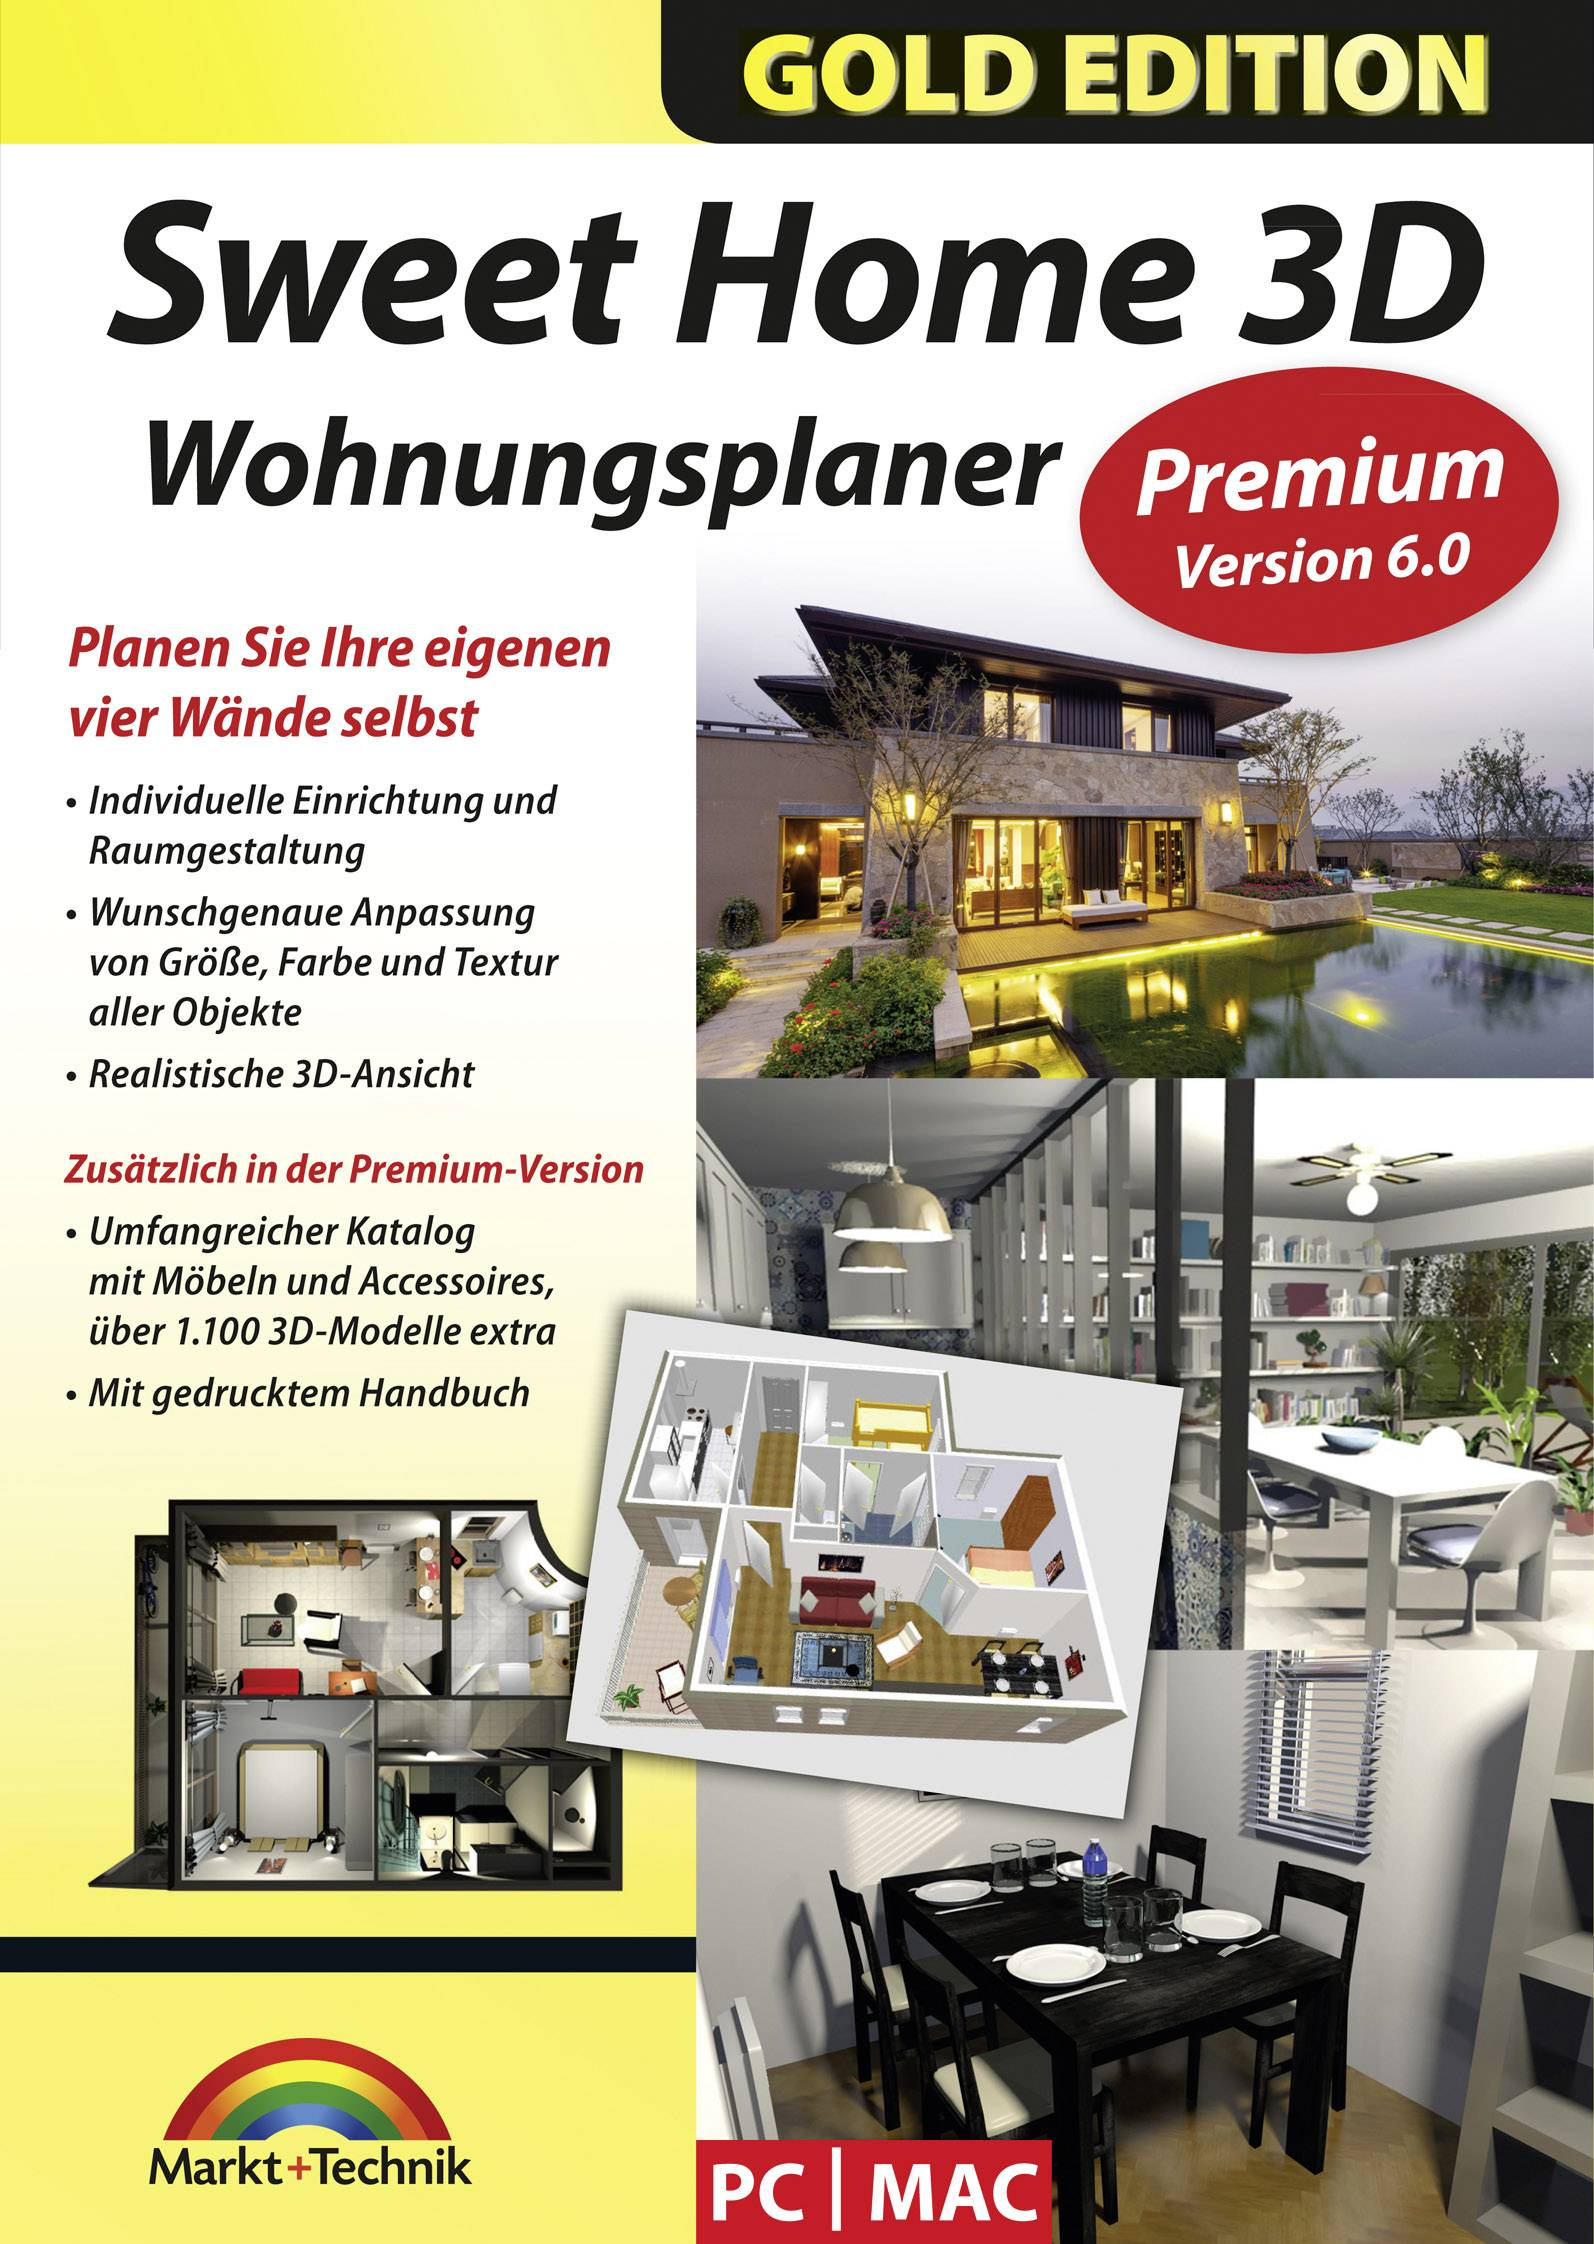 3d Wohnungsplaner Markt Technik Sweet Home 3d Full Version 1 License Windows Mac Os Planning